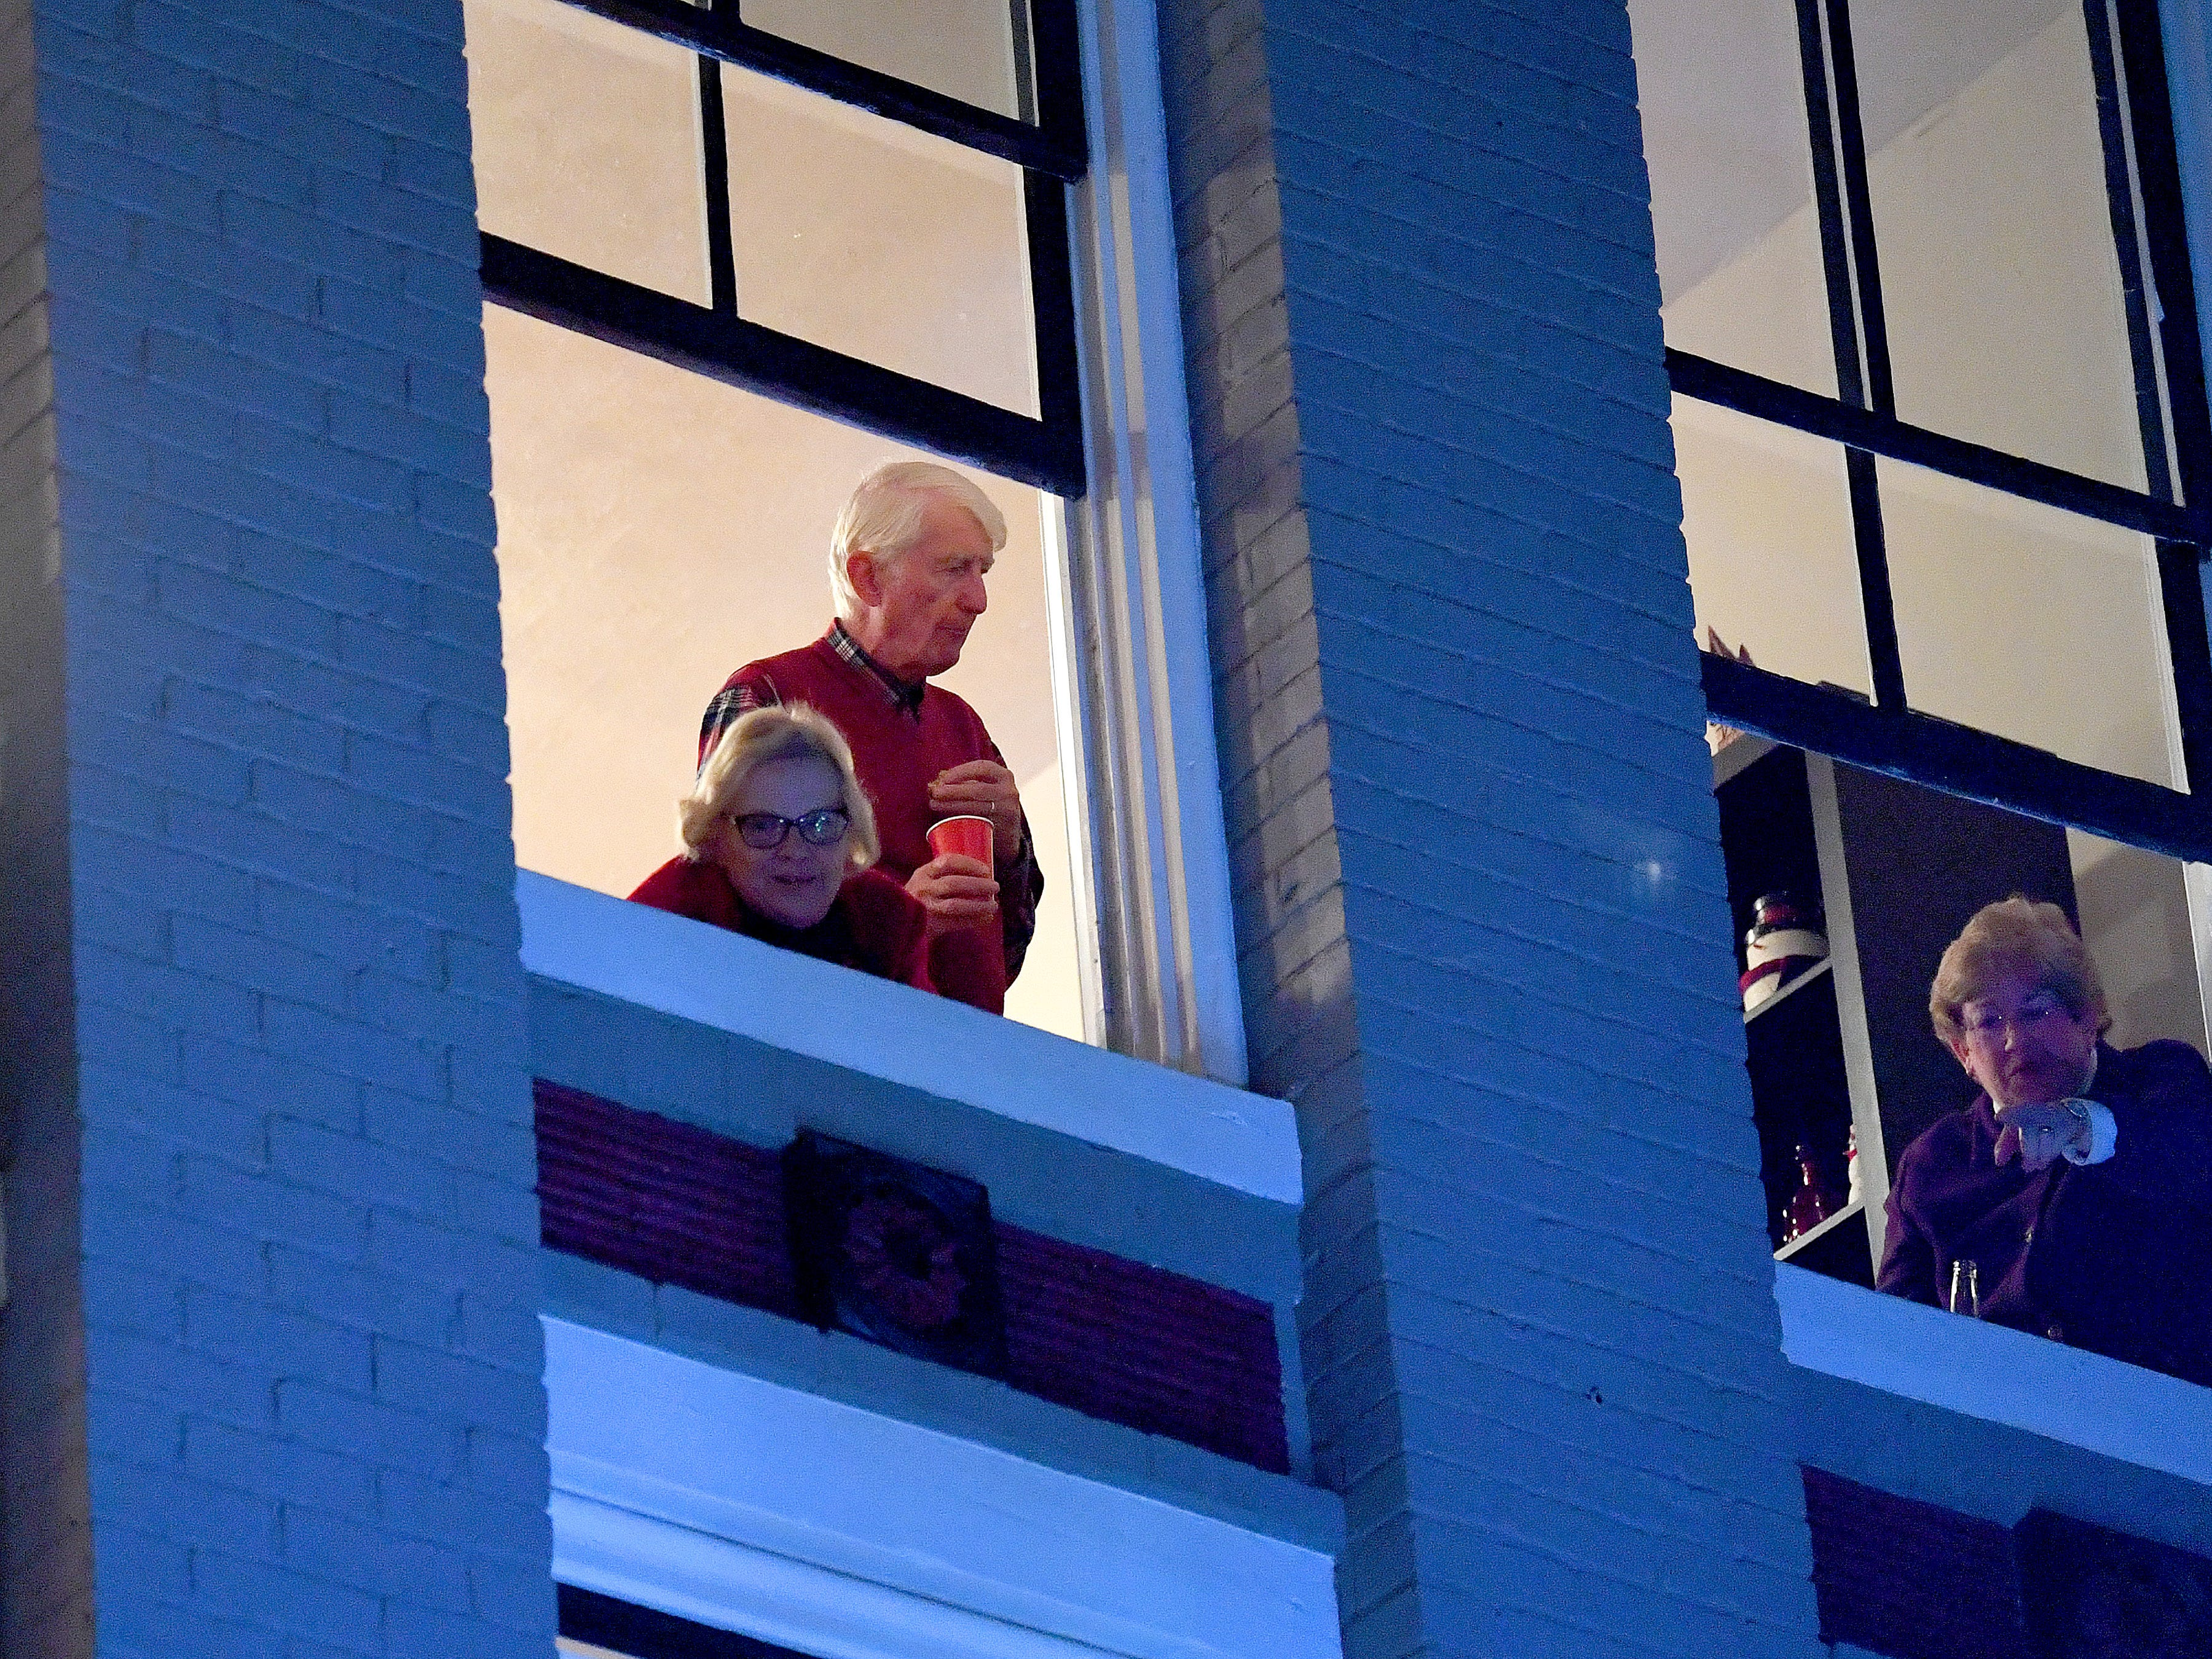 Spectators watch the Staunton Christmas Parade from a second floor vantage point overlooking the parade route on West Beverley Street on Monday, Nov. 26, 2018.